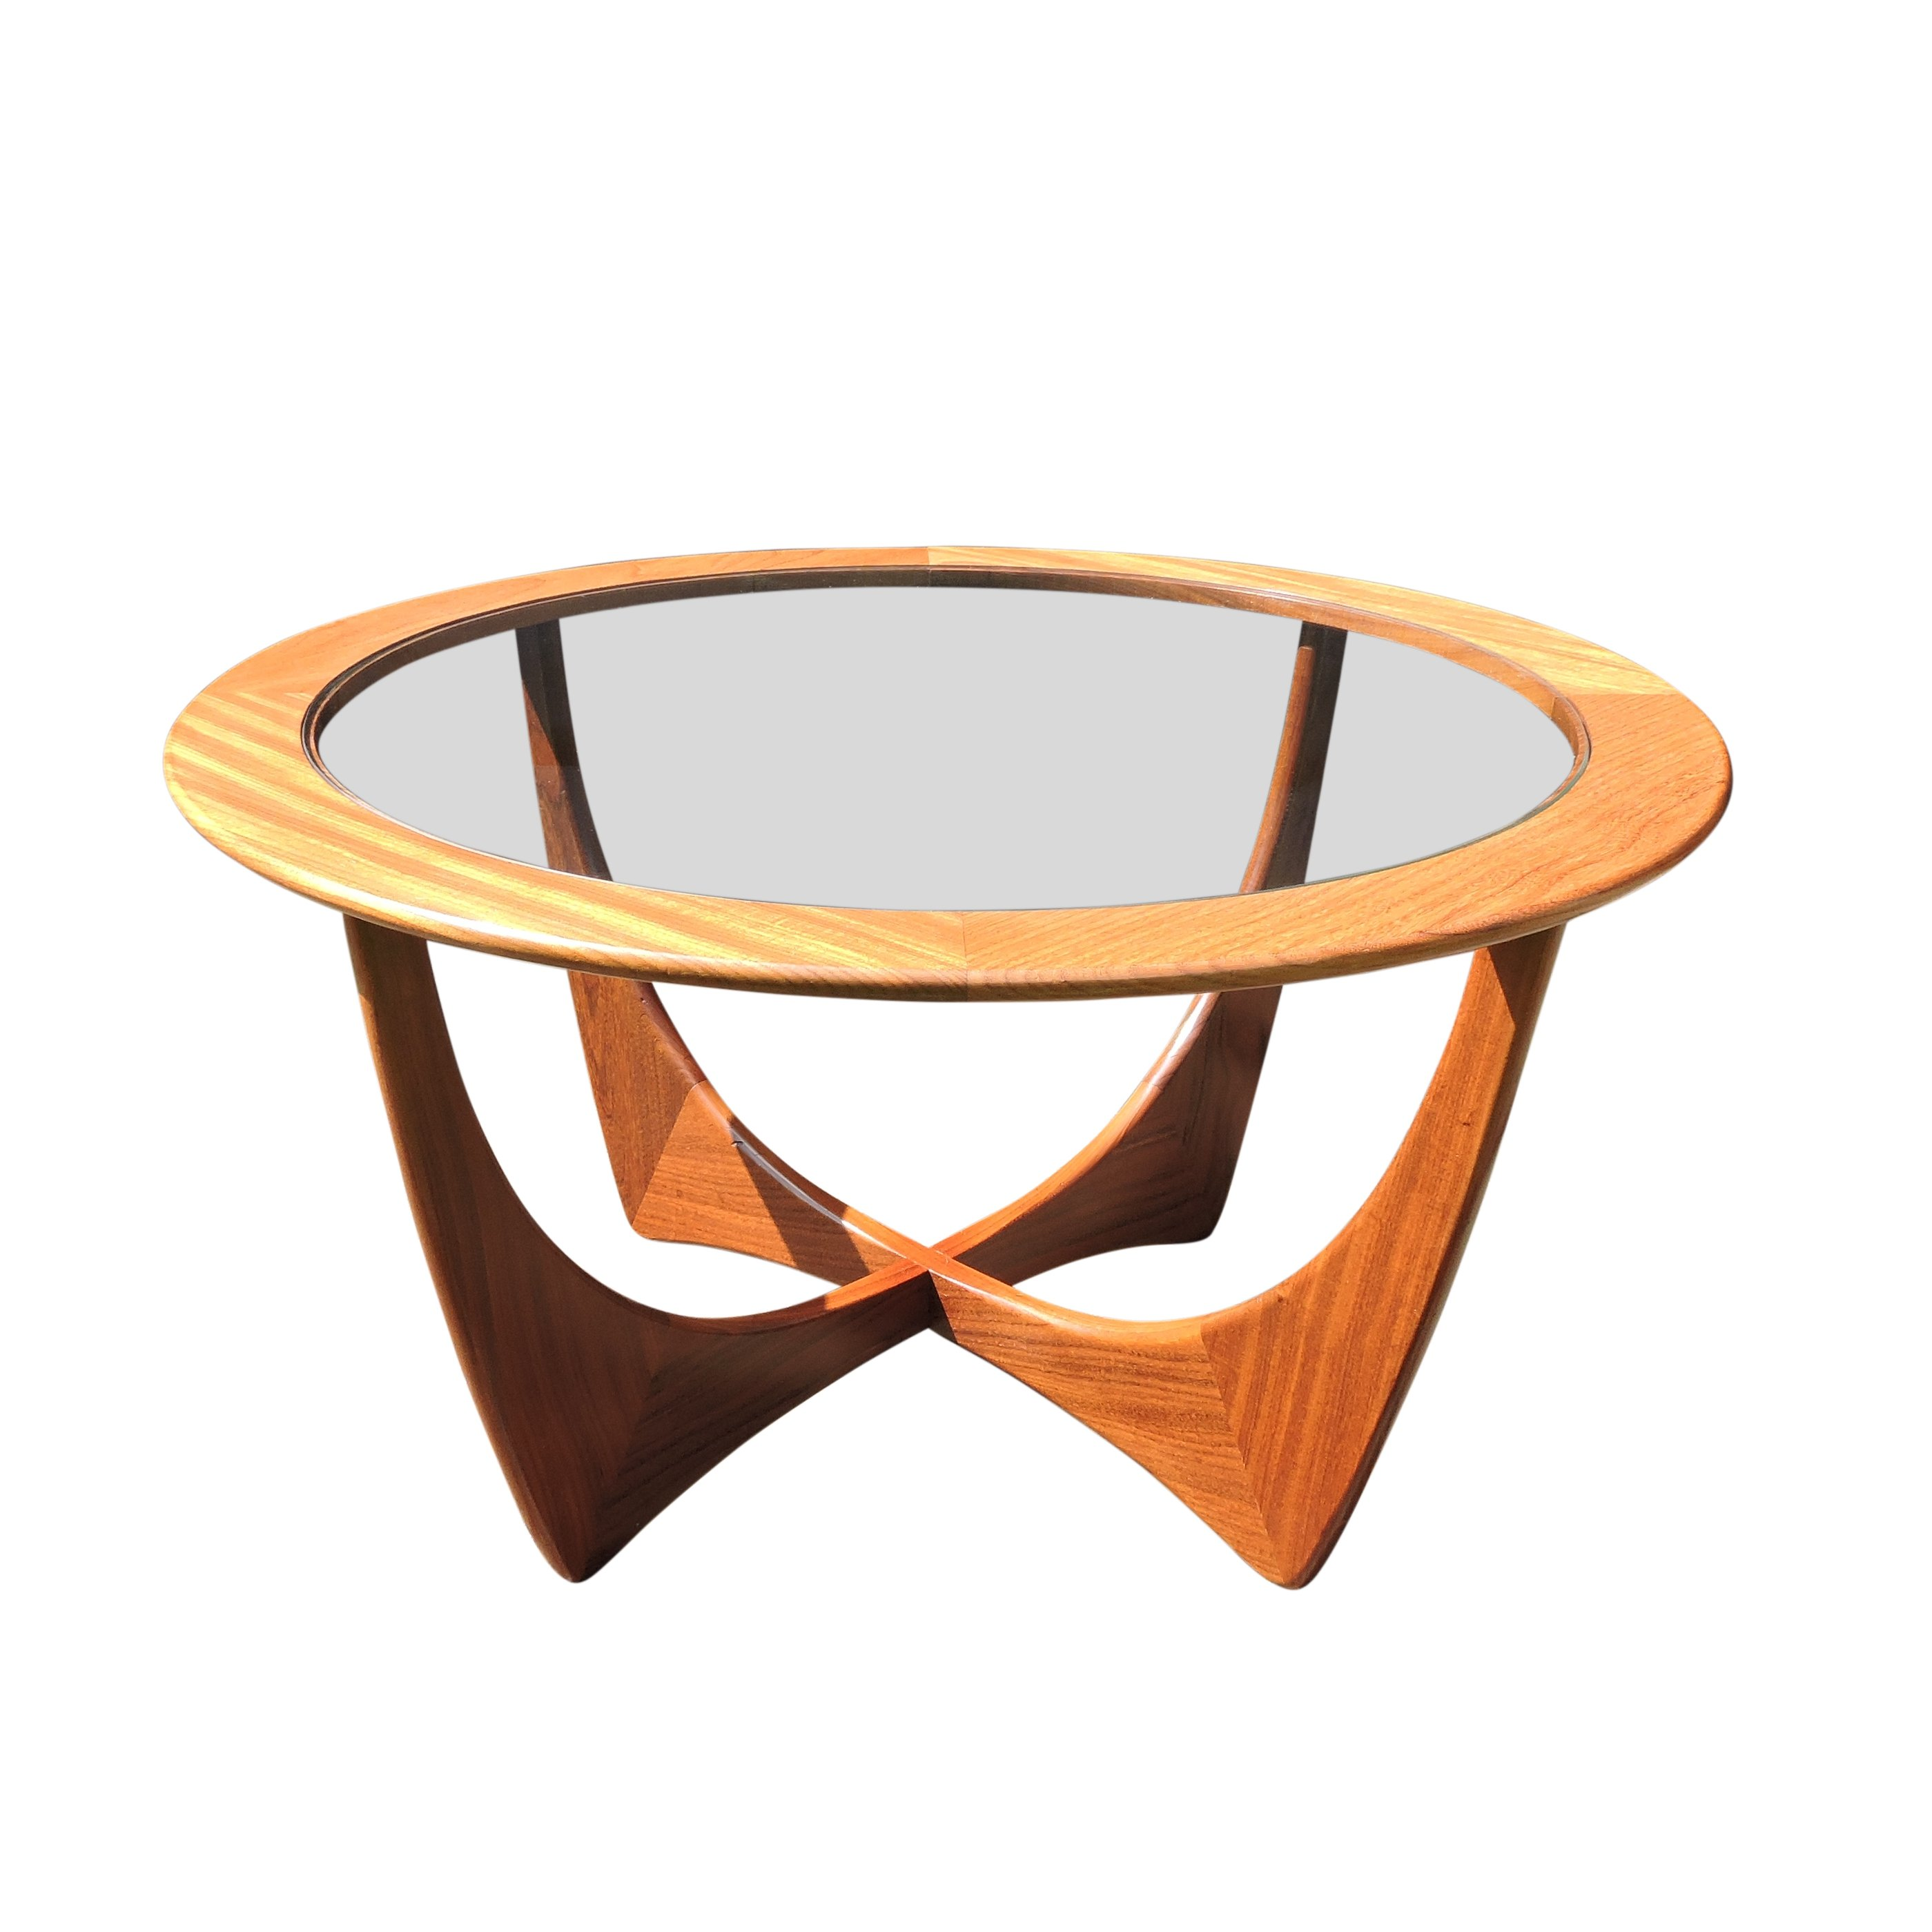 Astro Coffee Table.Astro Coffee Table By Victor Wilkins For G Plan 1960s